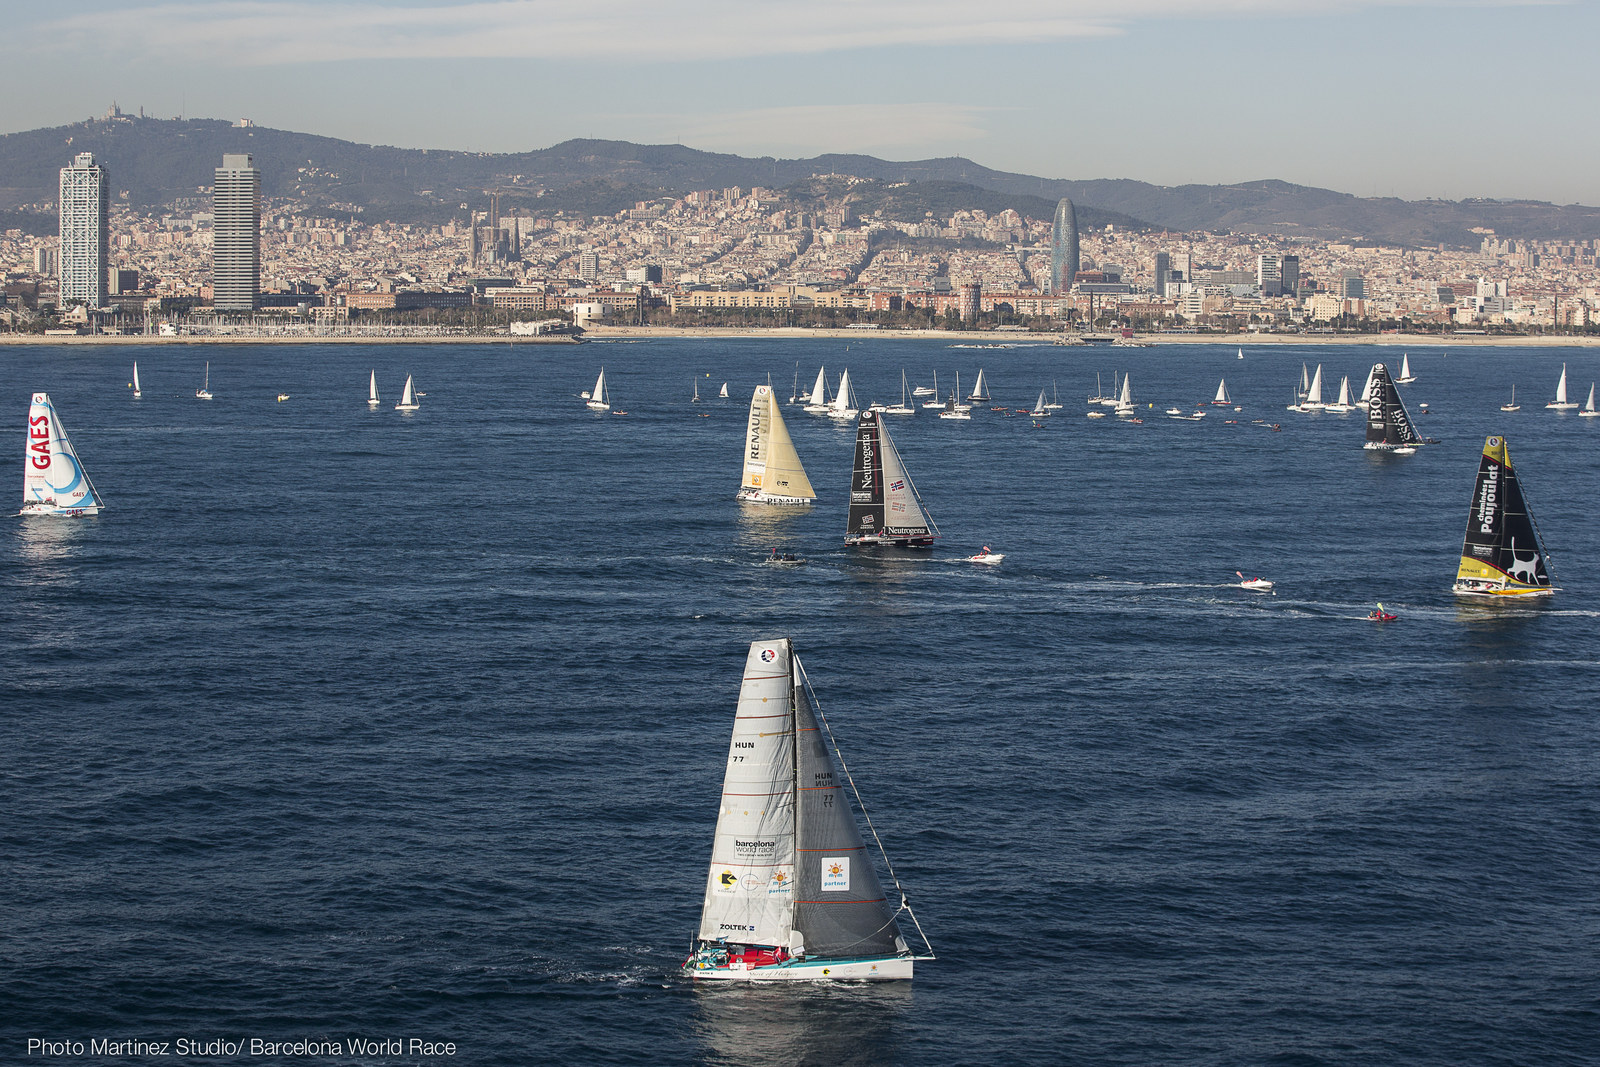 Barcelona World Race 2015 - Sun and Sons shine on Light Winds